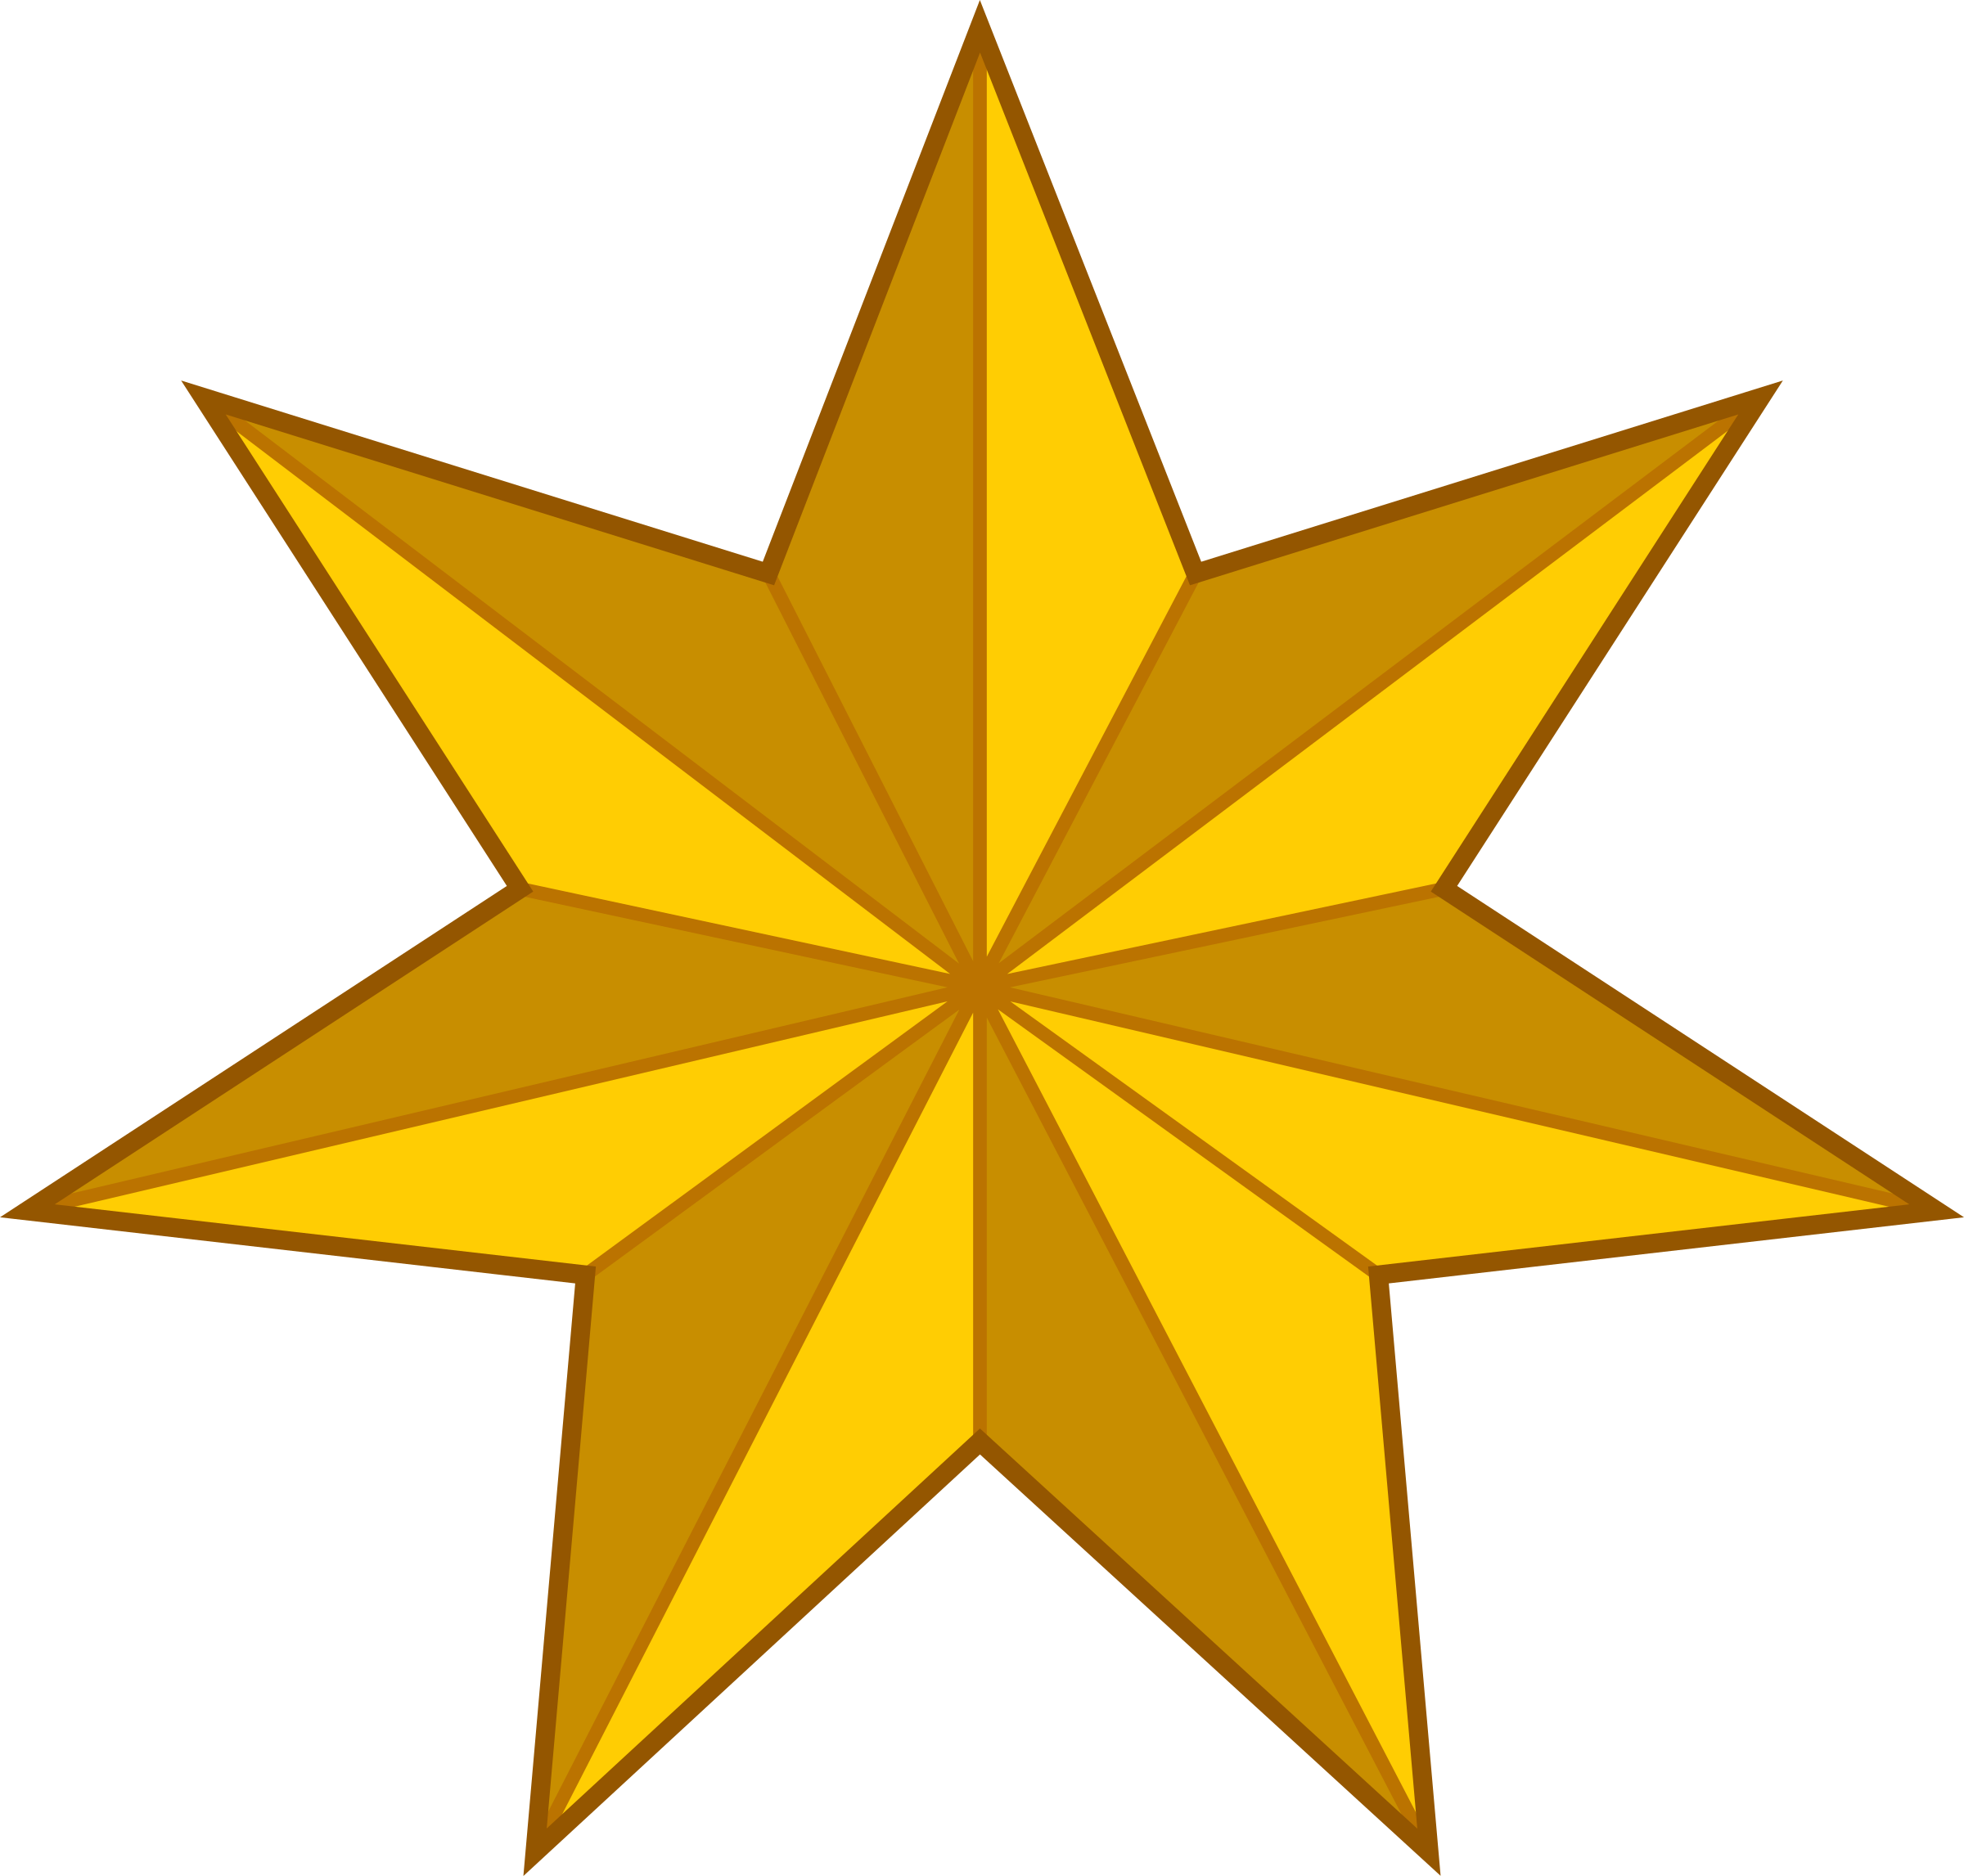 Commonwealth star by Firkin